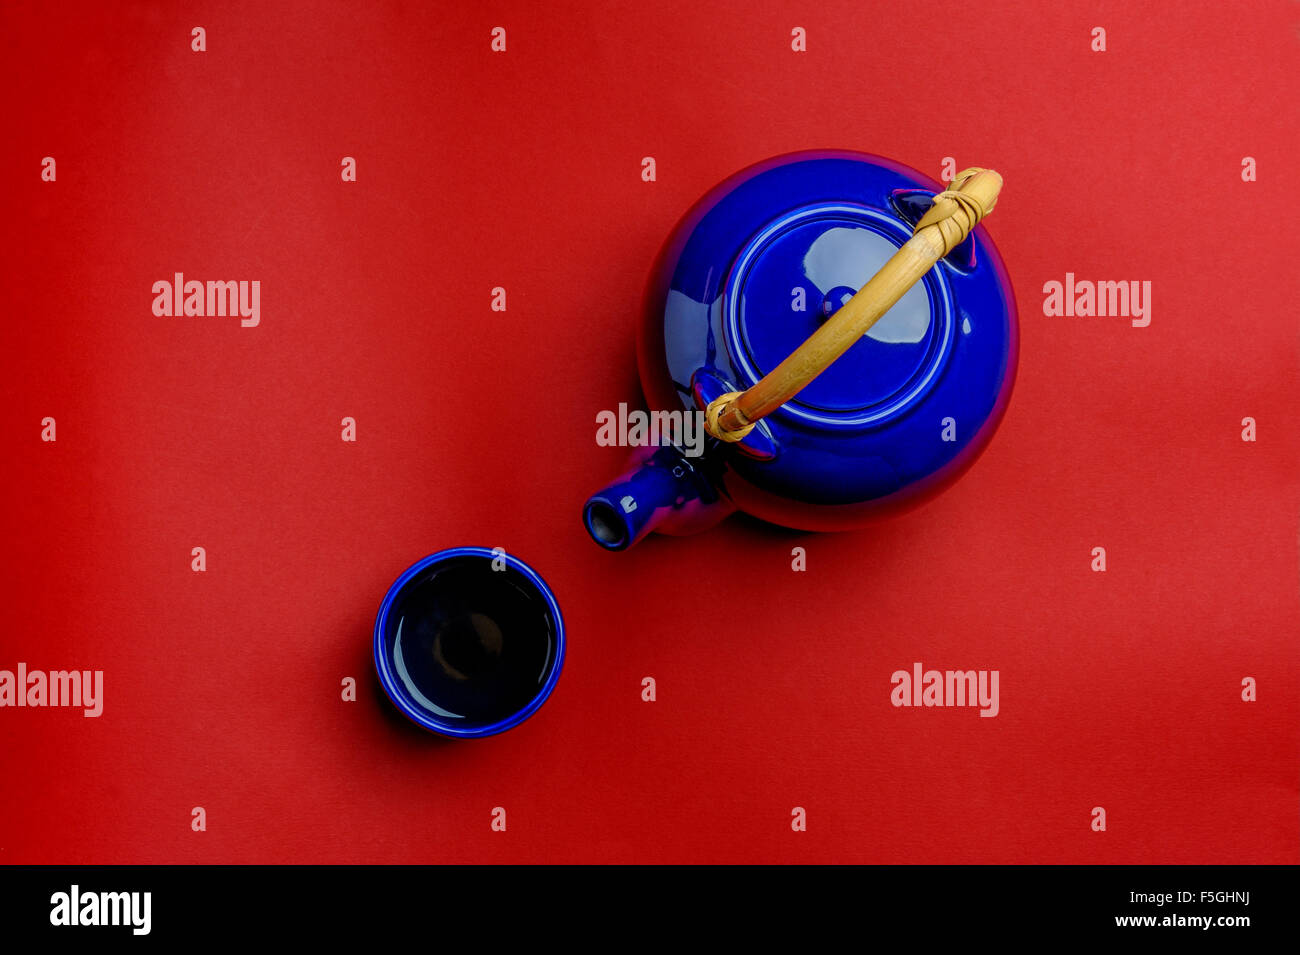 Japanese or Chinese tea pot and bowl. - Stock Image